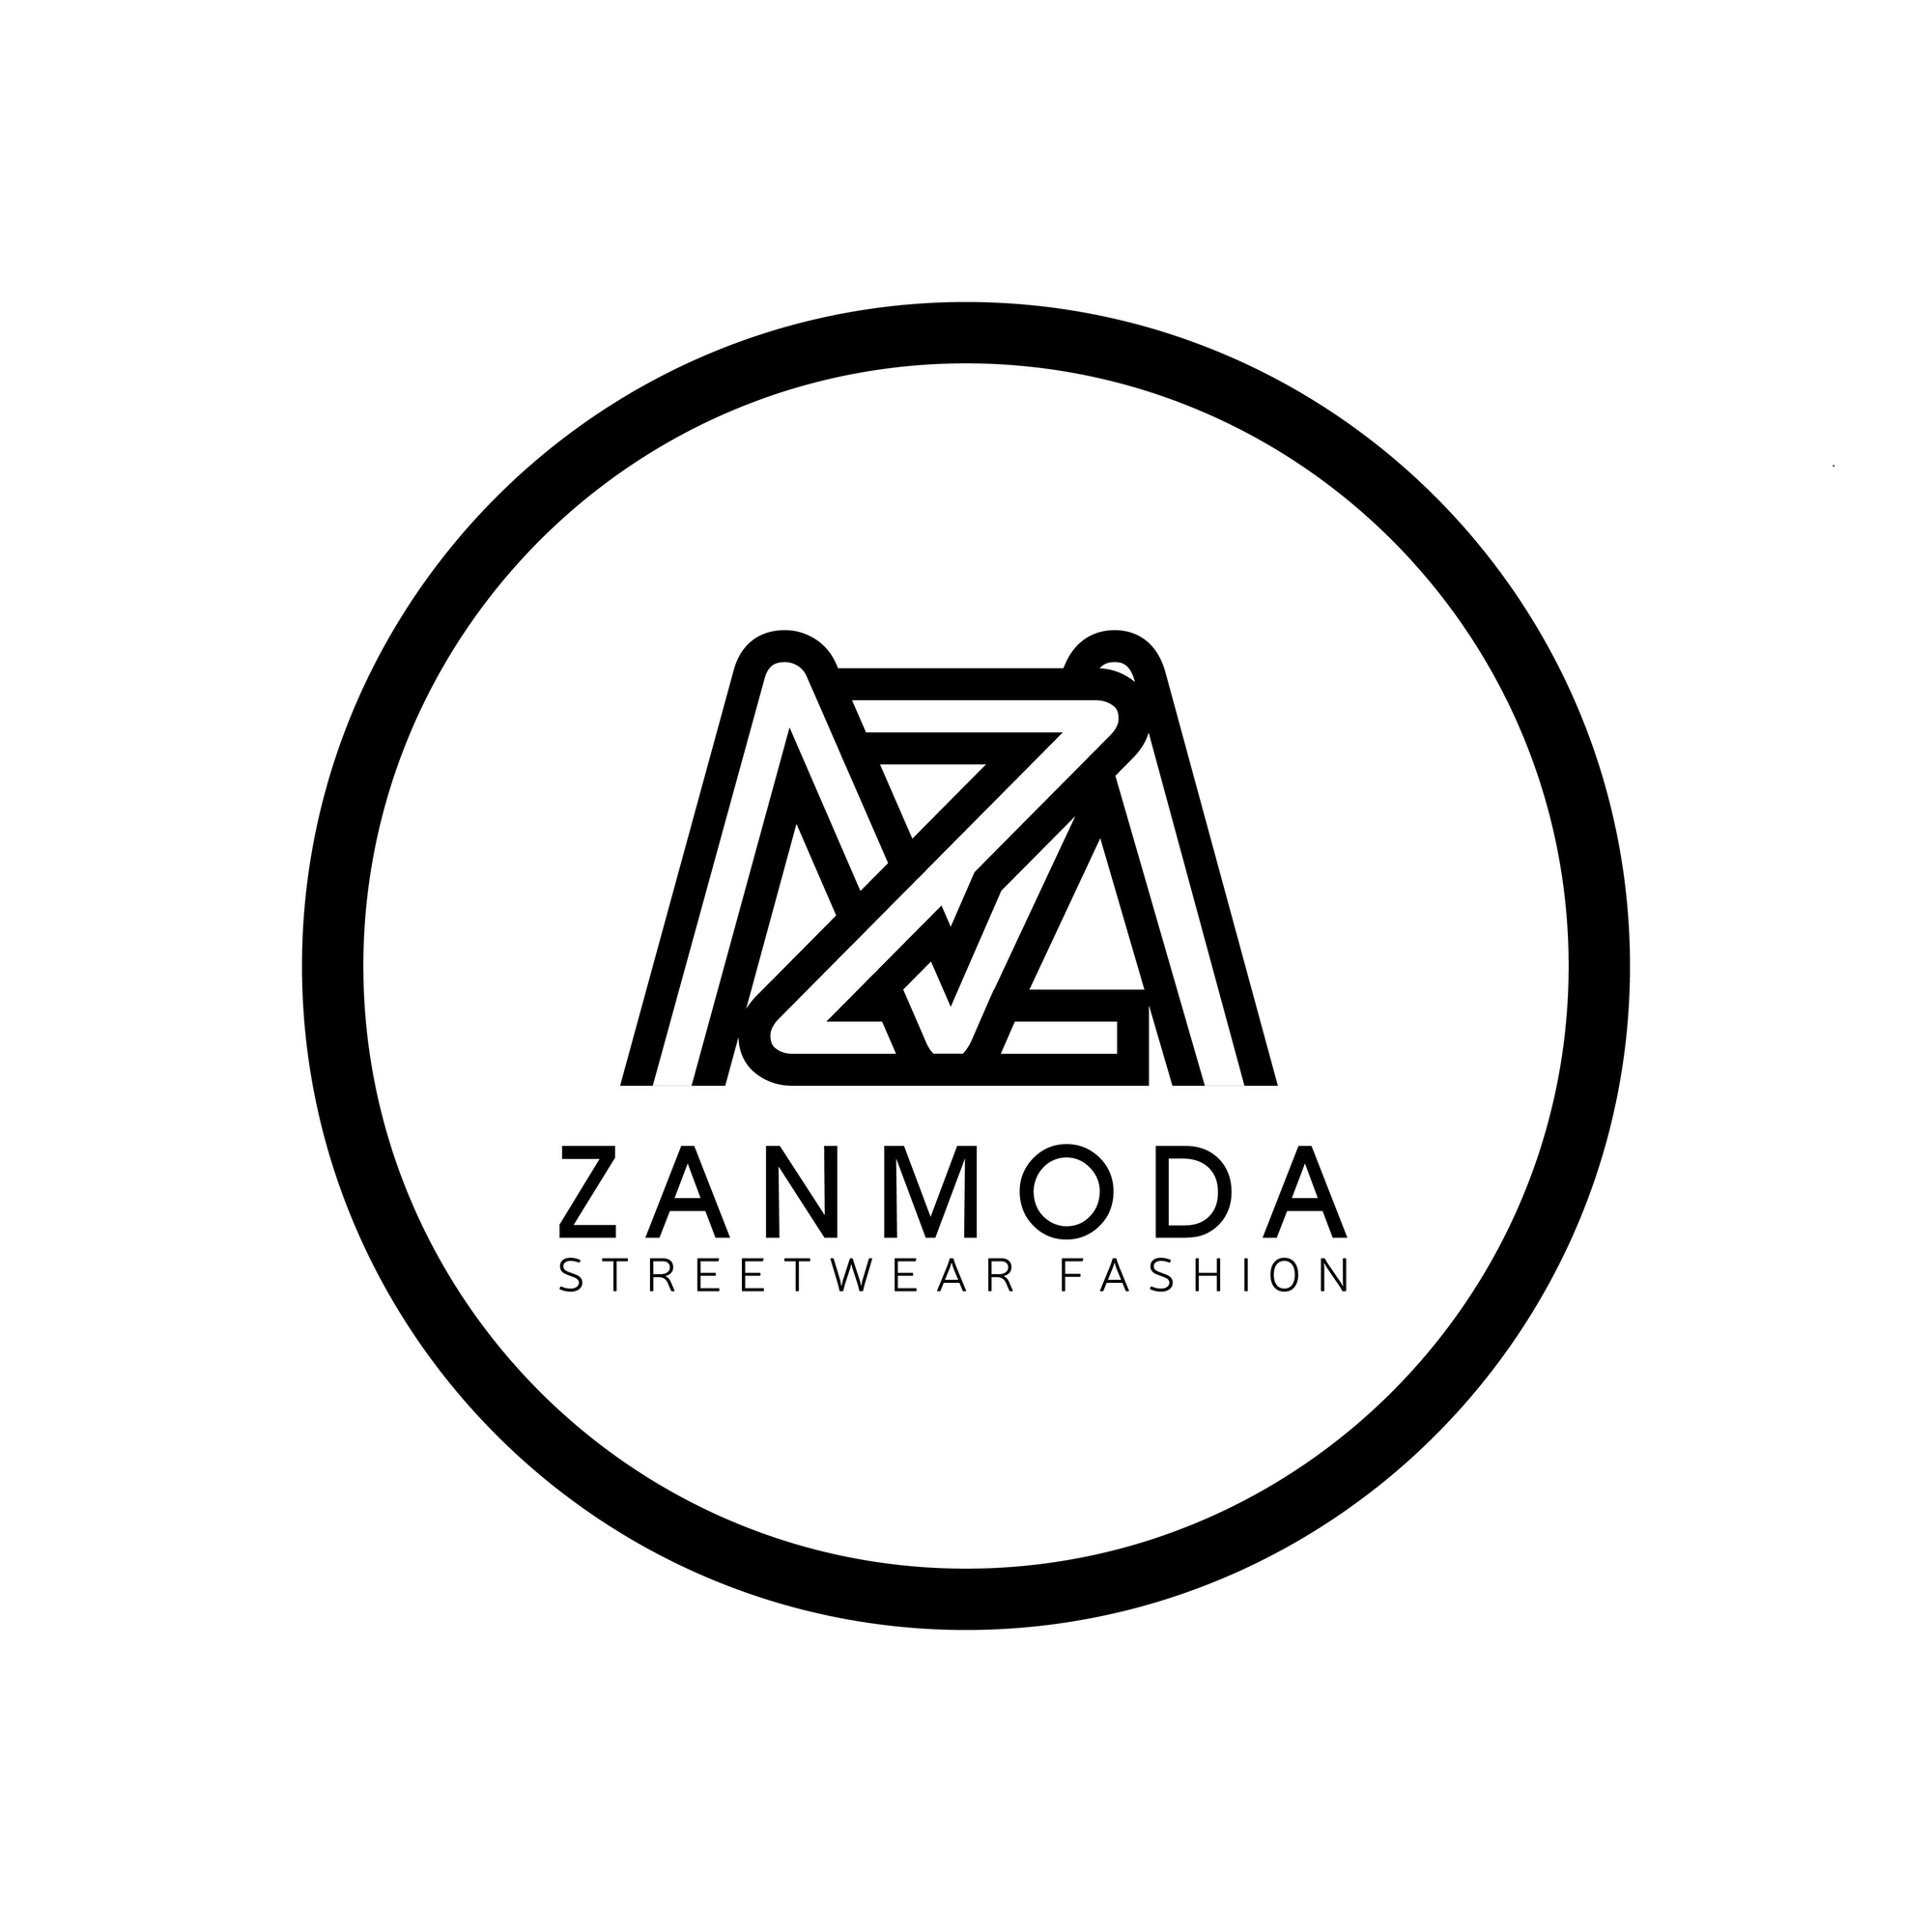 Zanmoda Streetwear Fashion